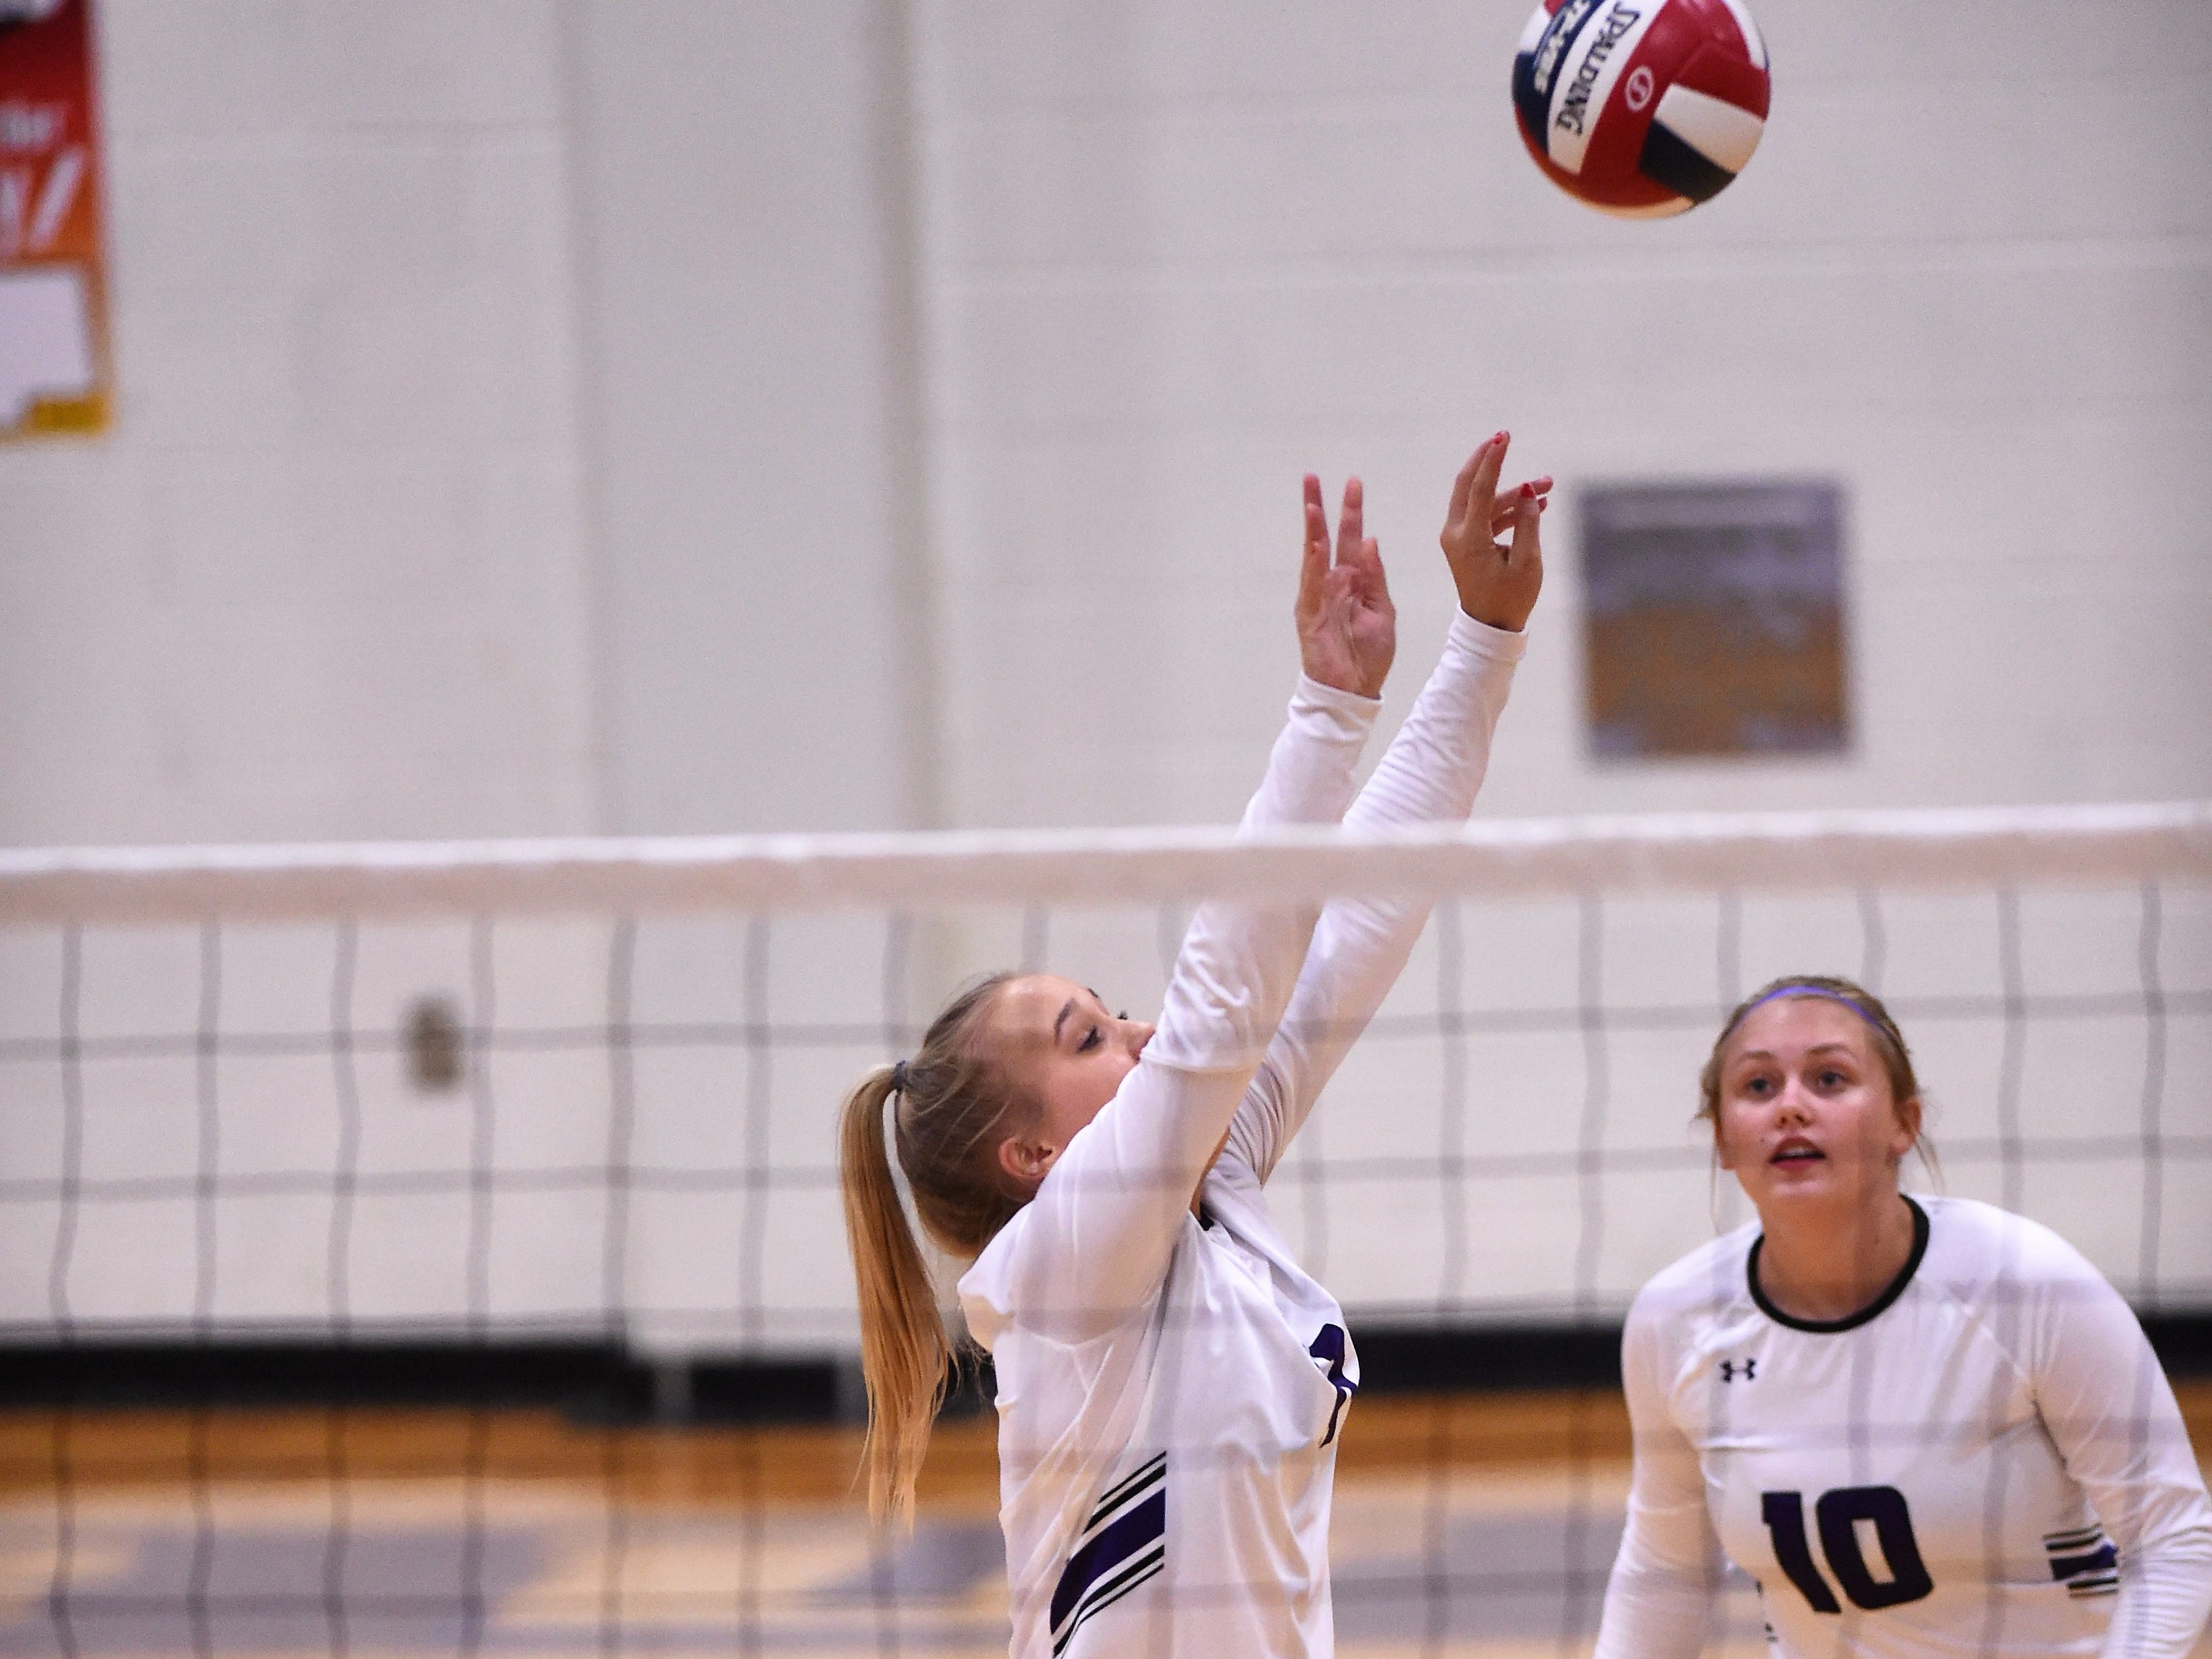 Wylie's Lexie Miller (11) sets a pass during the Lady Bulldogs' sweep of Big Spring on Tuesday, Sept. 18, 2018.